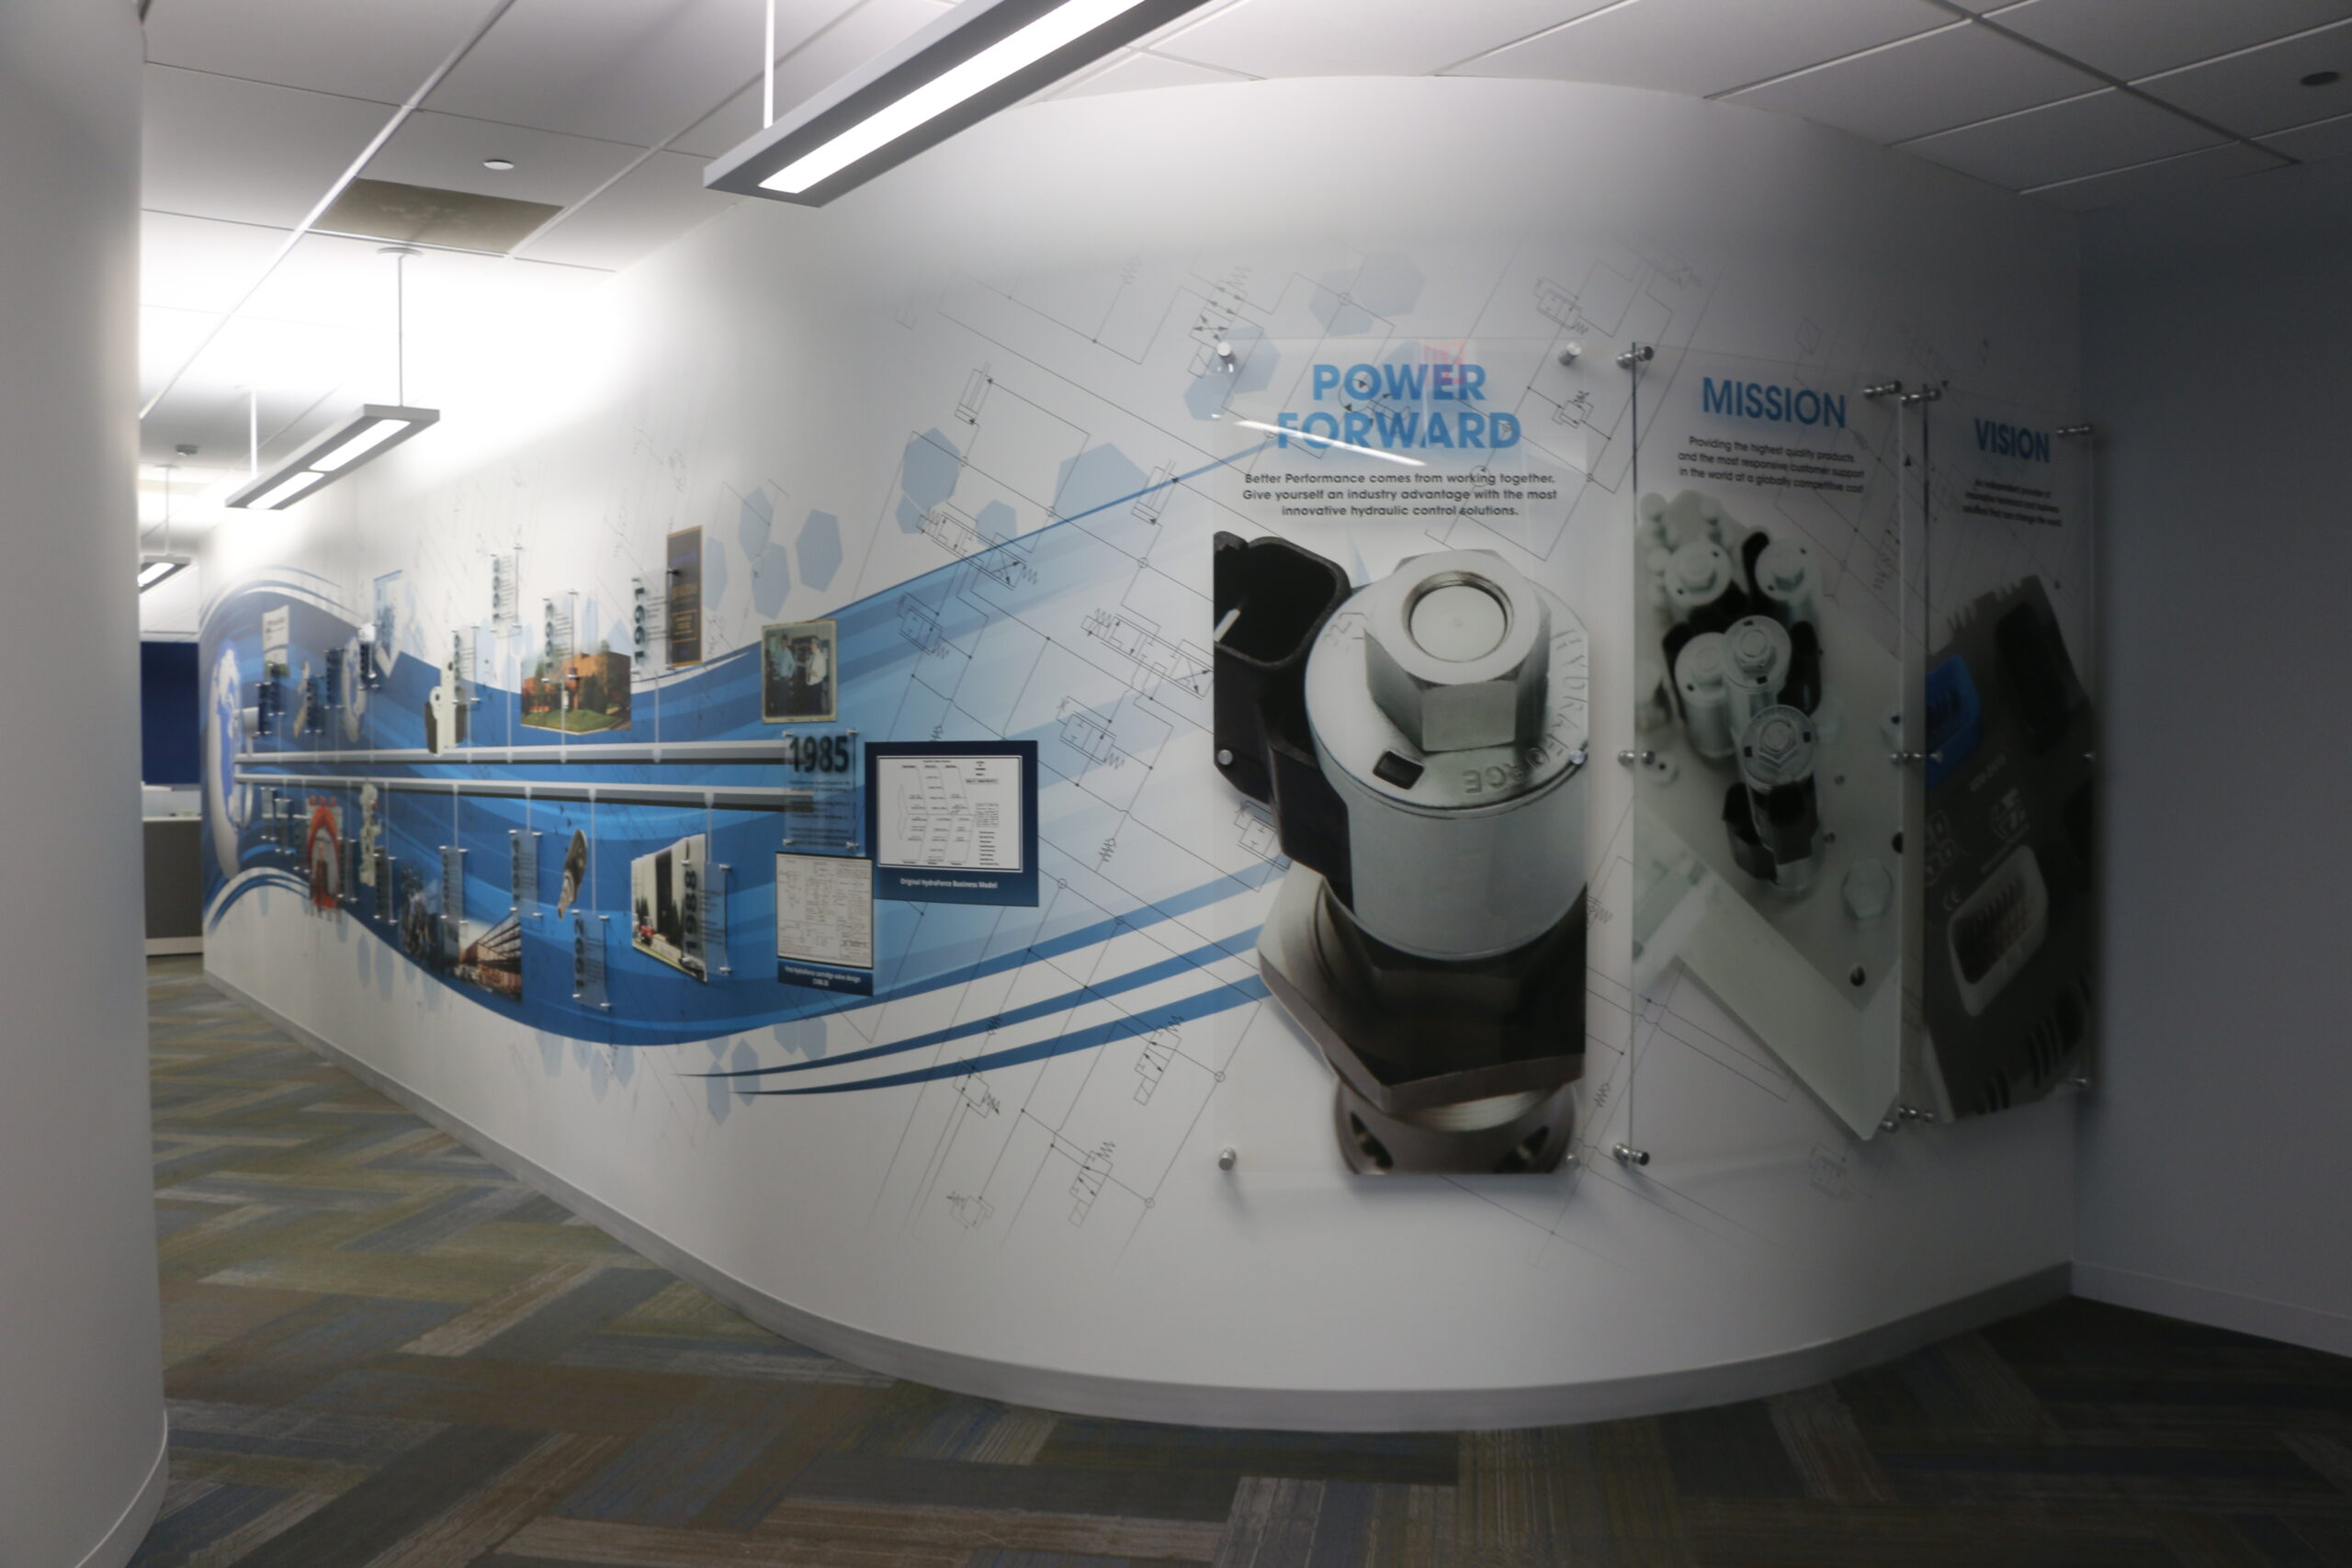 Interior office view of HydraForce.